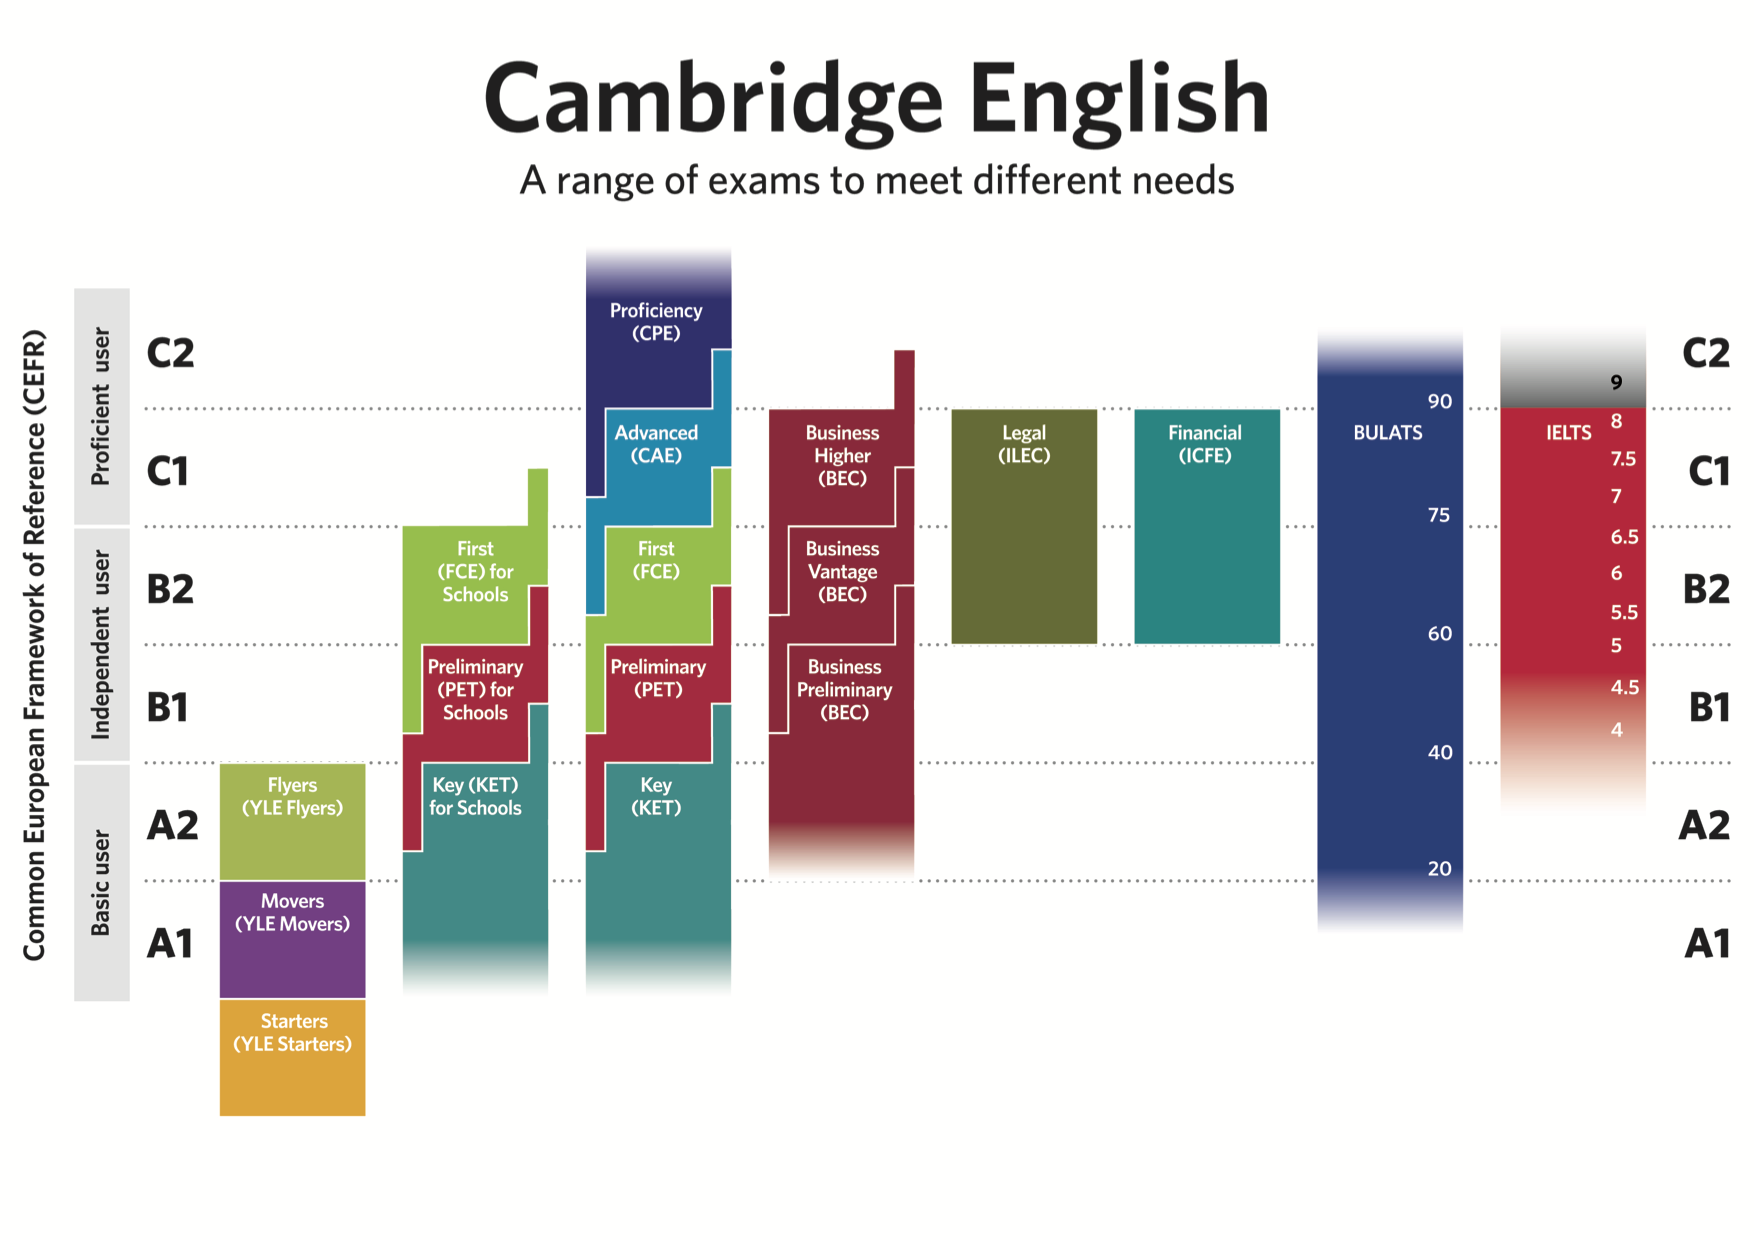 CEFR_Cambridge_English.png